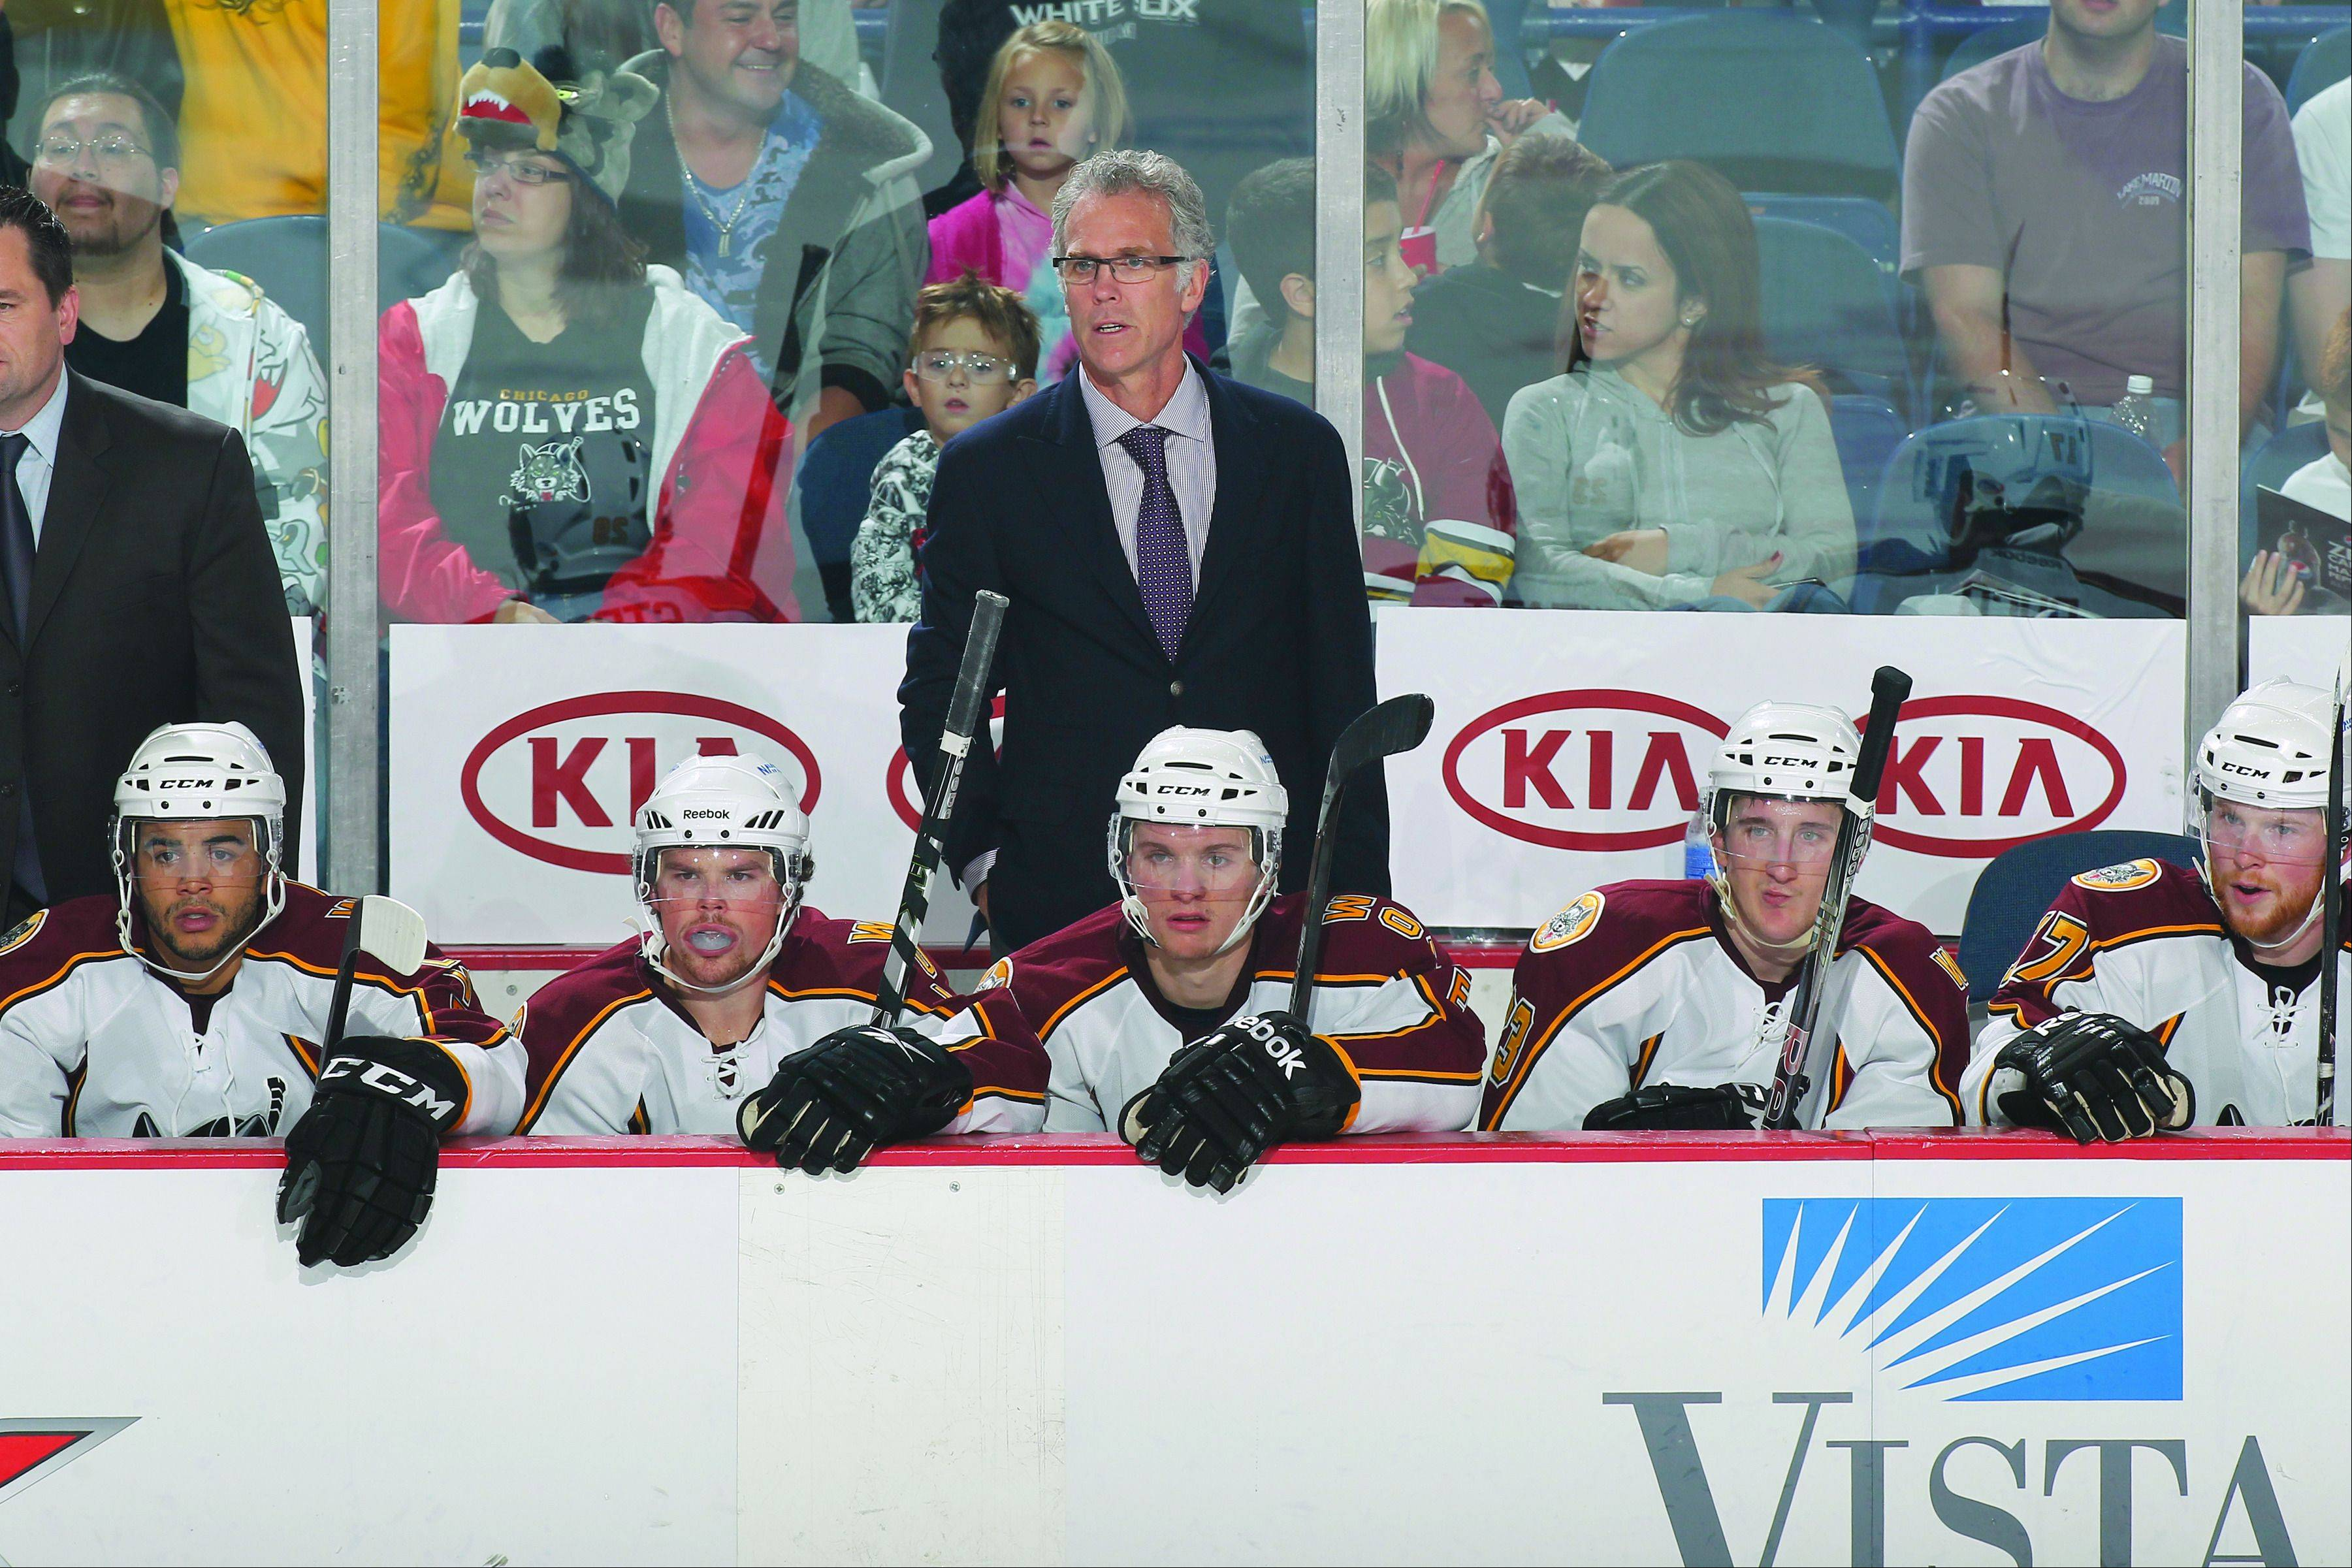 After guiding the Wolves to a Midwest Division title in the AHL, head coach Craig MacTavish has resigned and taken a job in the Edmonton Oilers organization as senior vice president of operations.